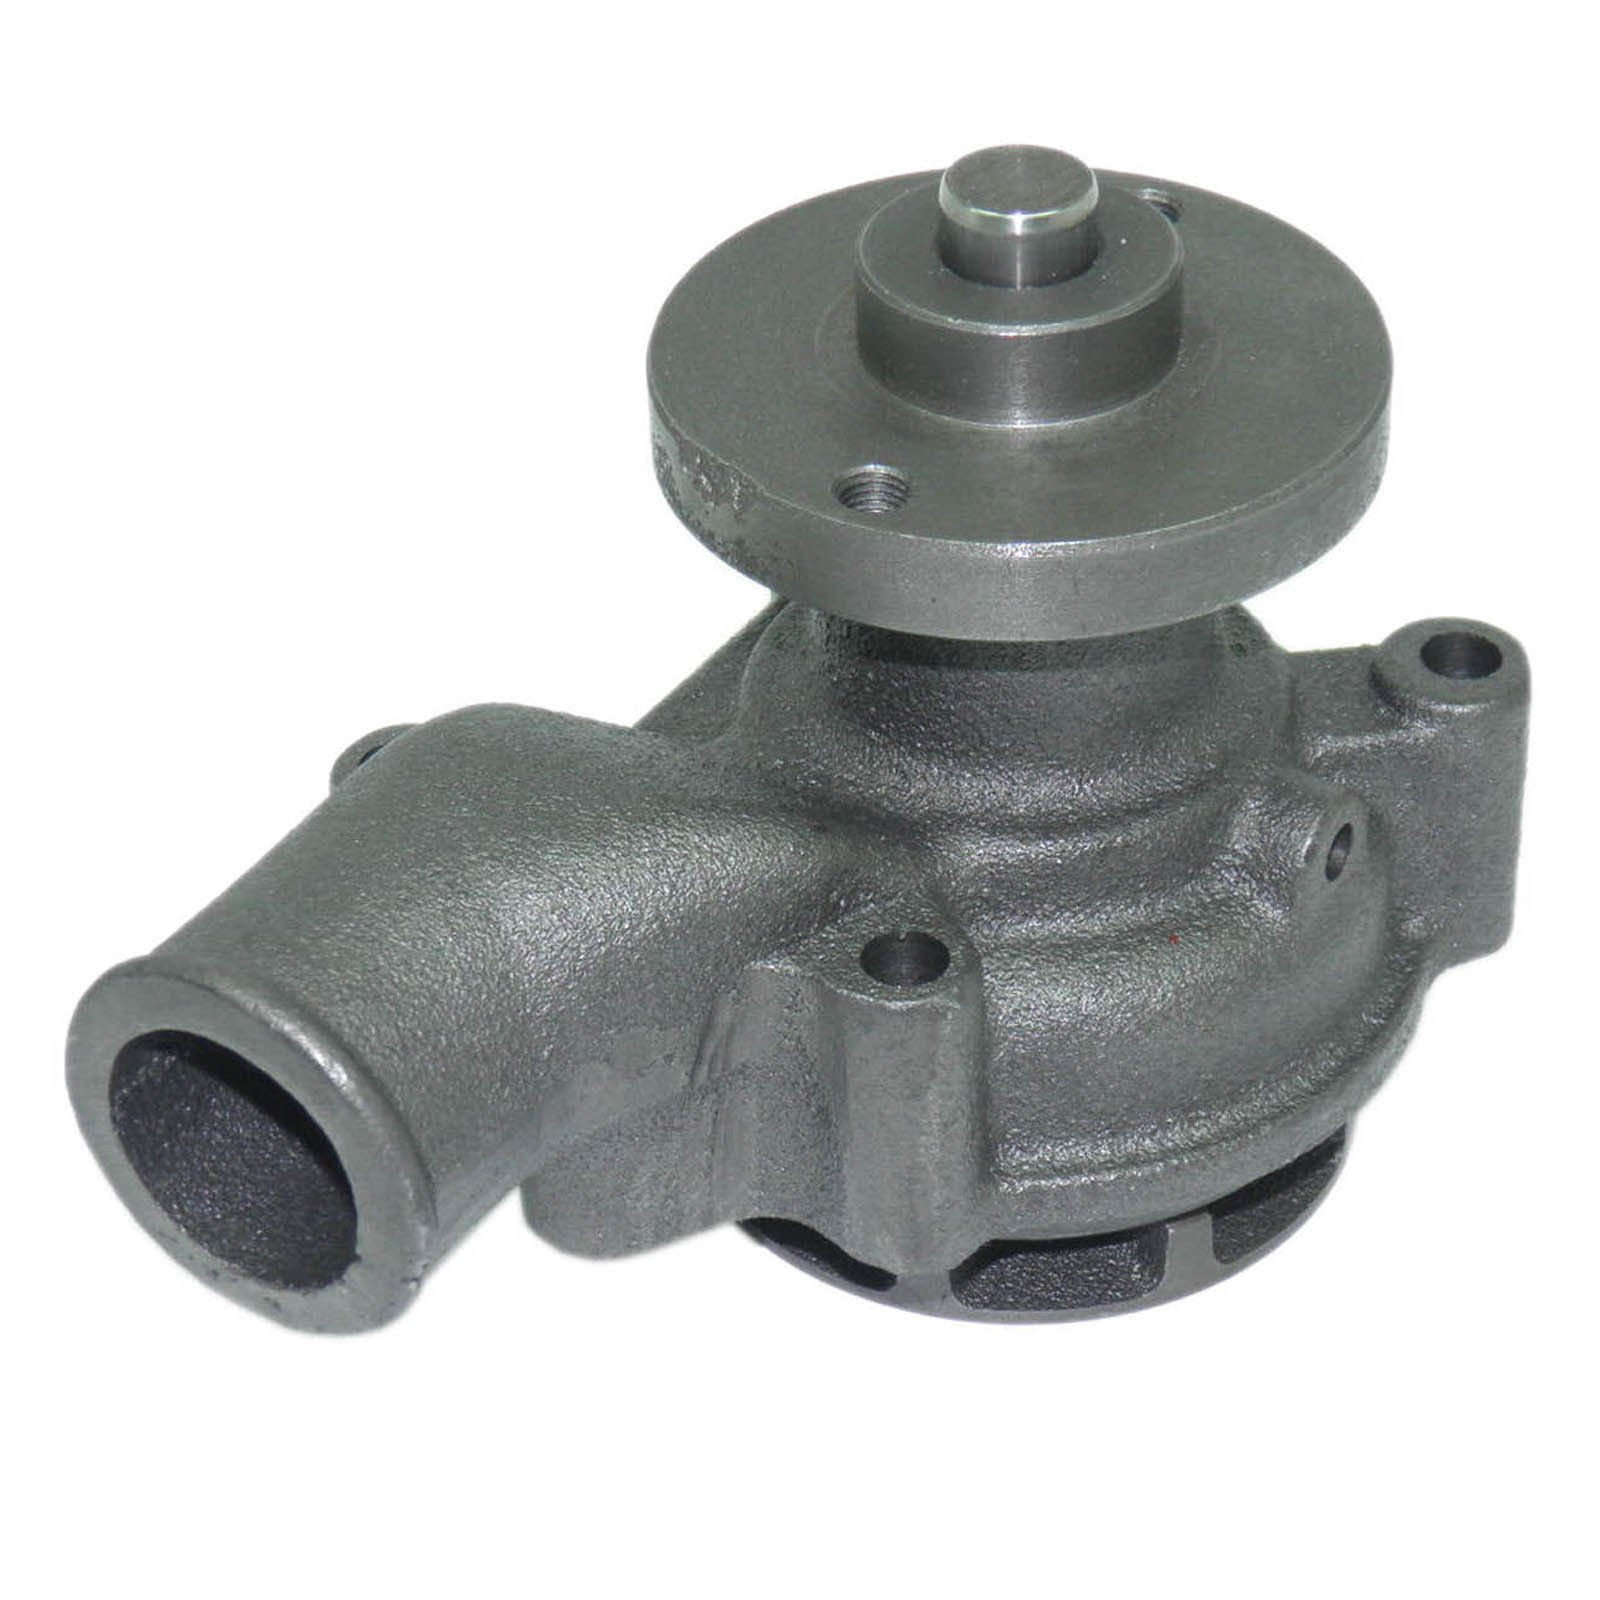 Forklift Supply - Aftermarket Daewoo Forklift Water Pump PN D700615